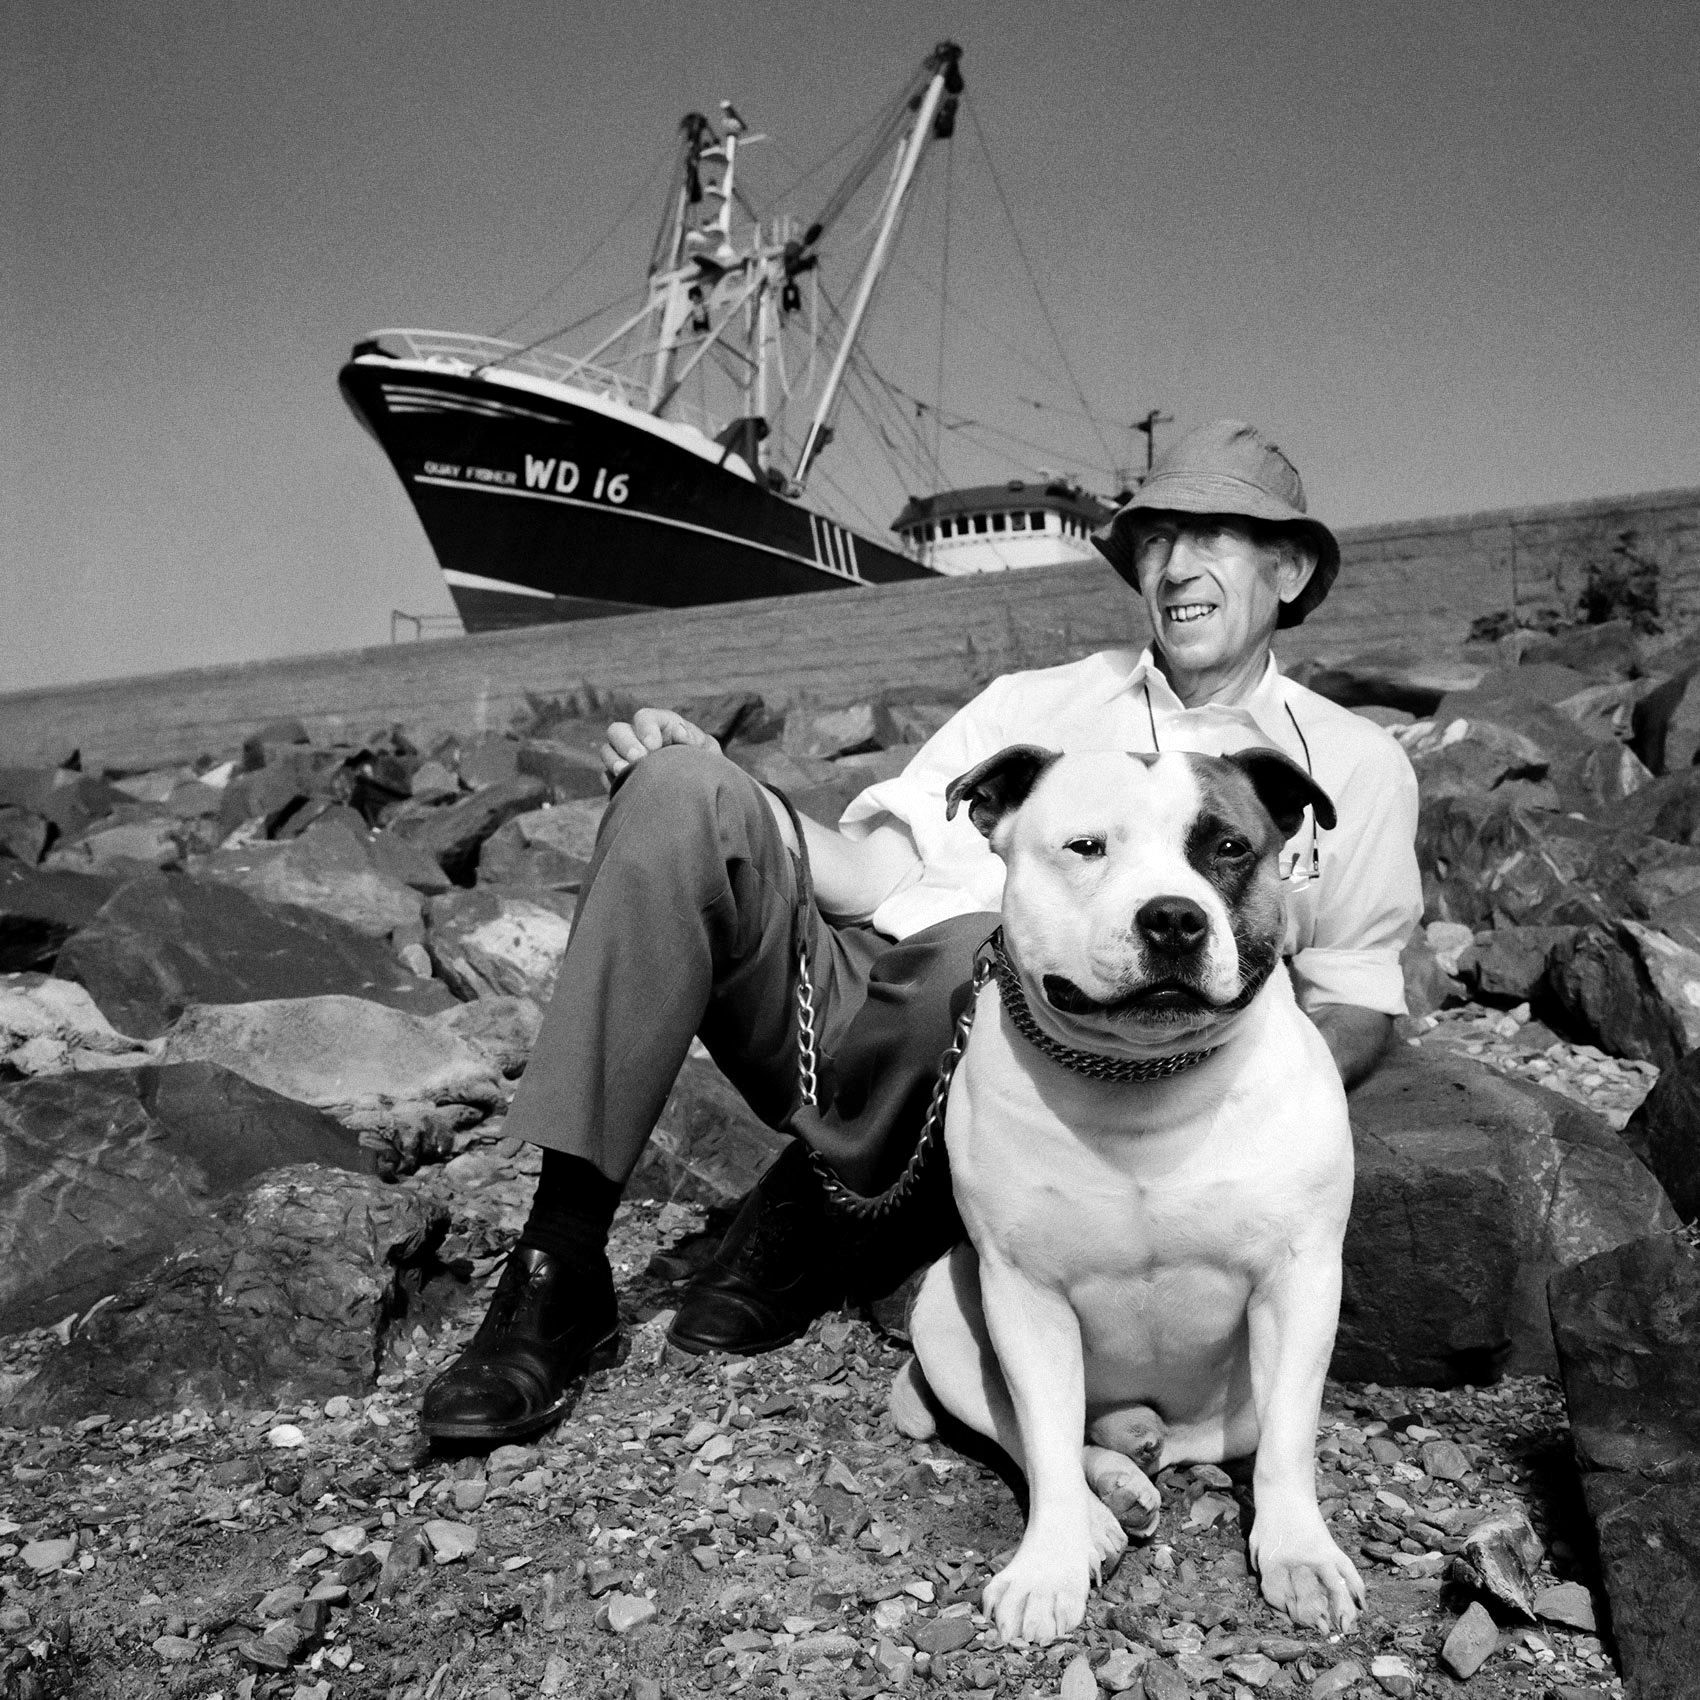 an-irishman-and-his-large-dog-sit-on-the-rocky-shoreline-in-howth-ireland